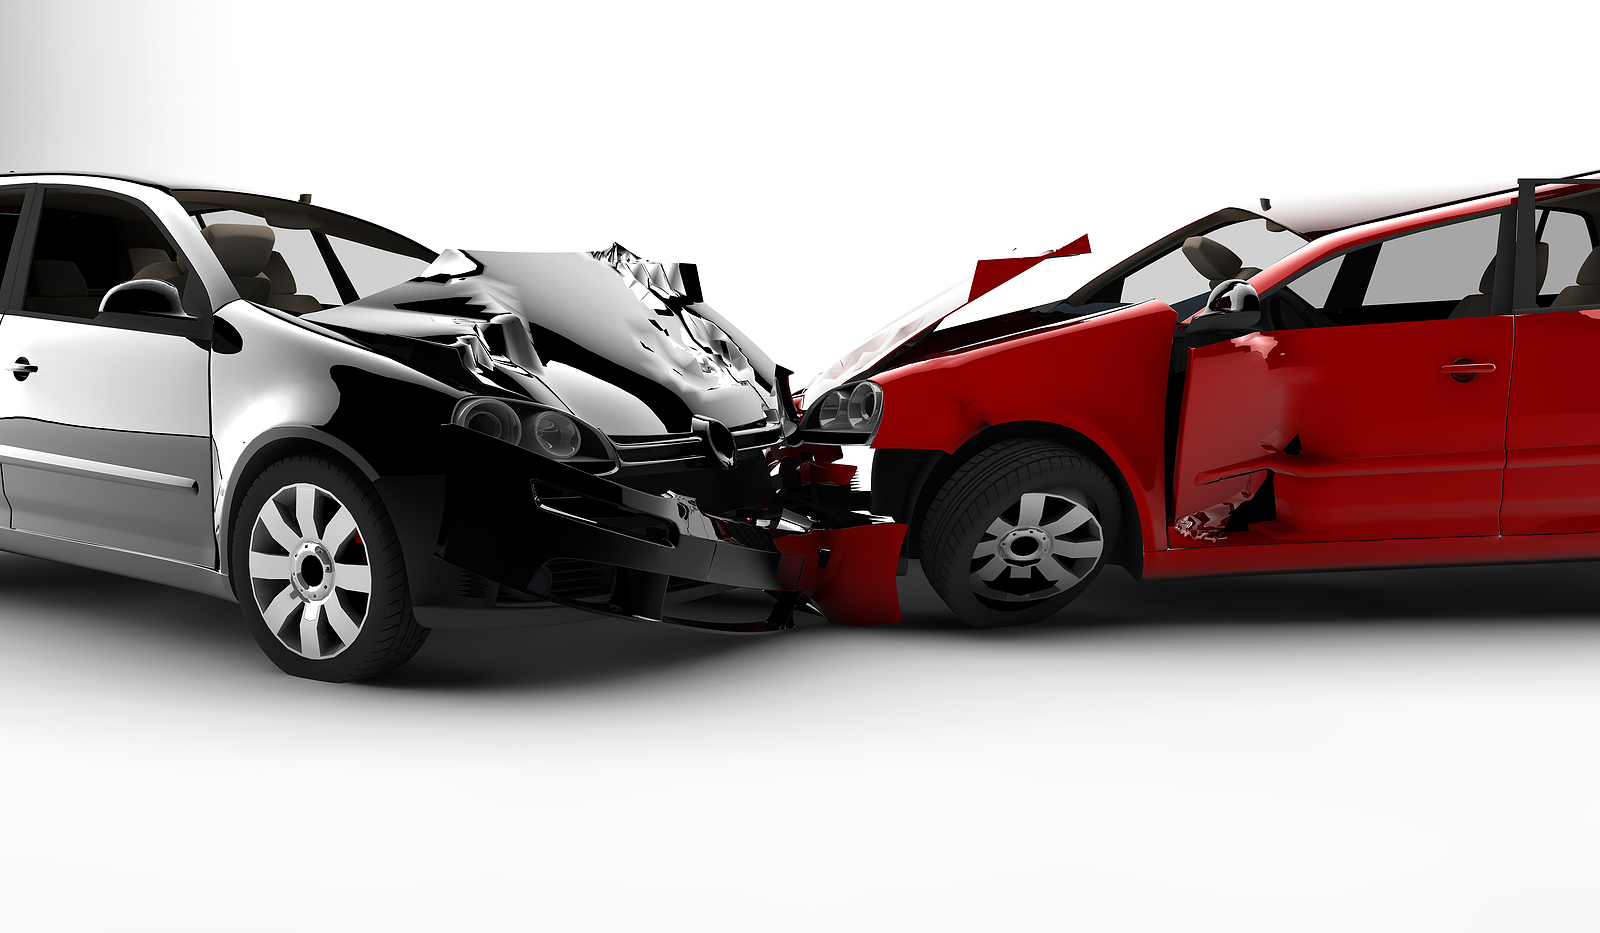 bigstock-Accident-With-Two-Cars-10969376